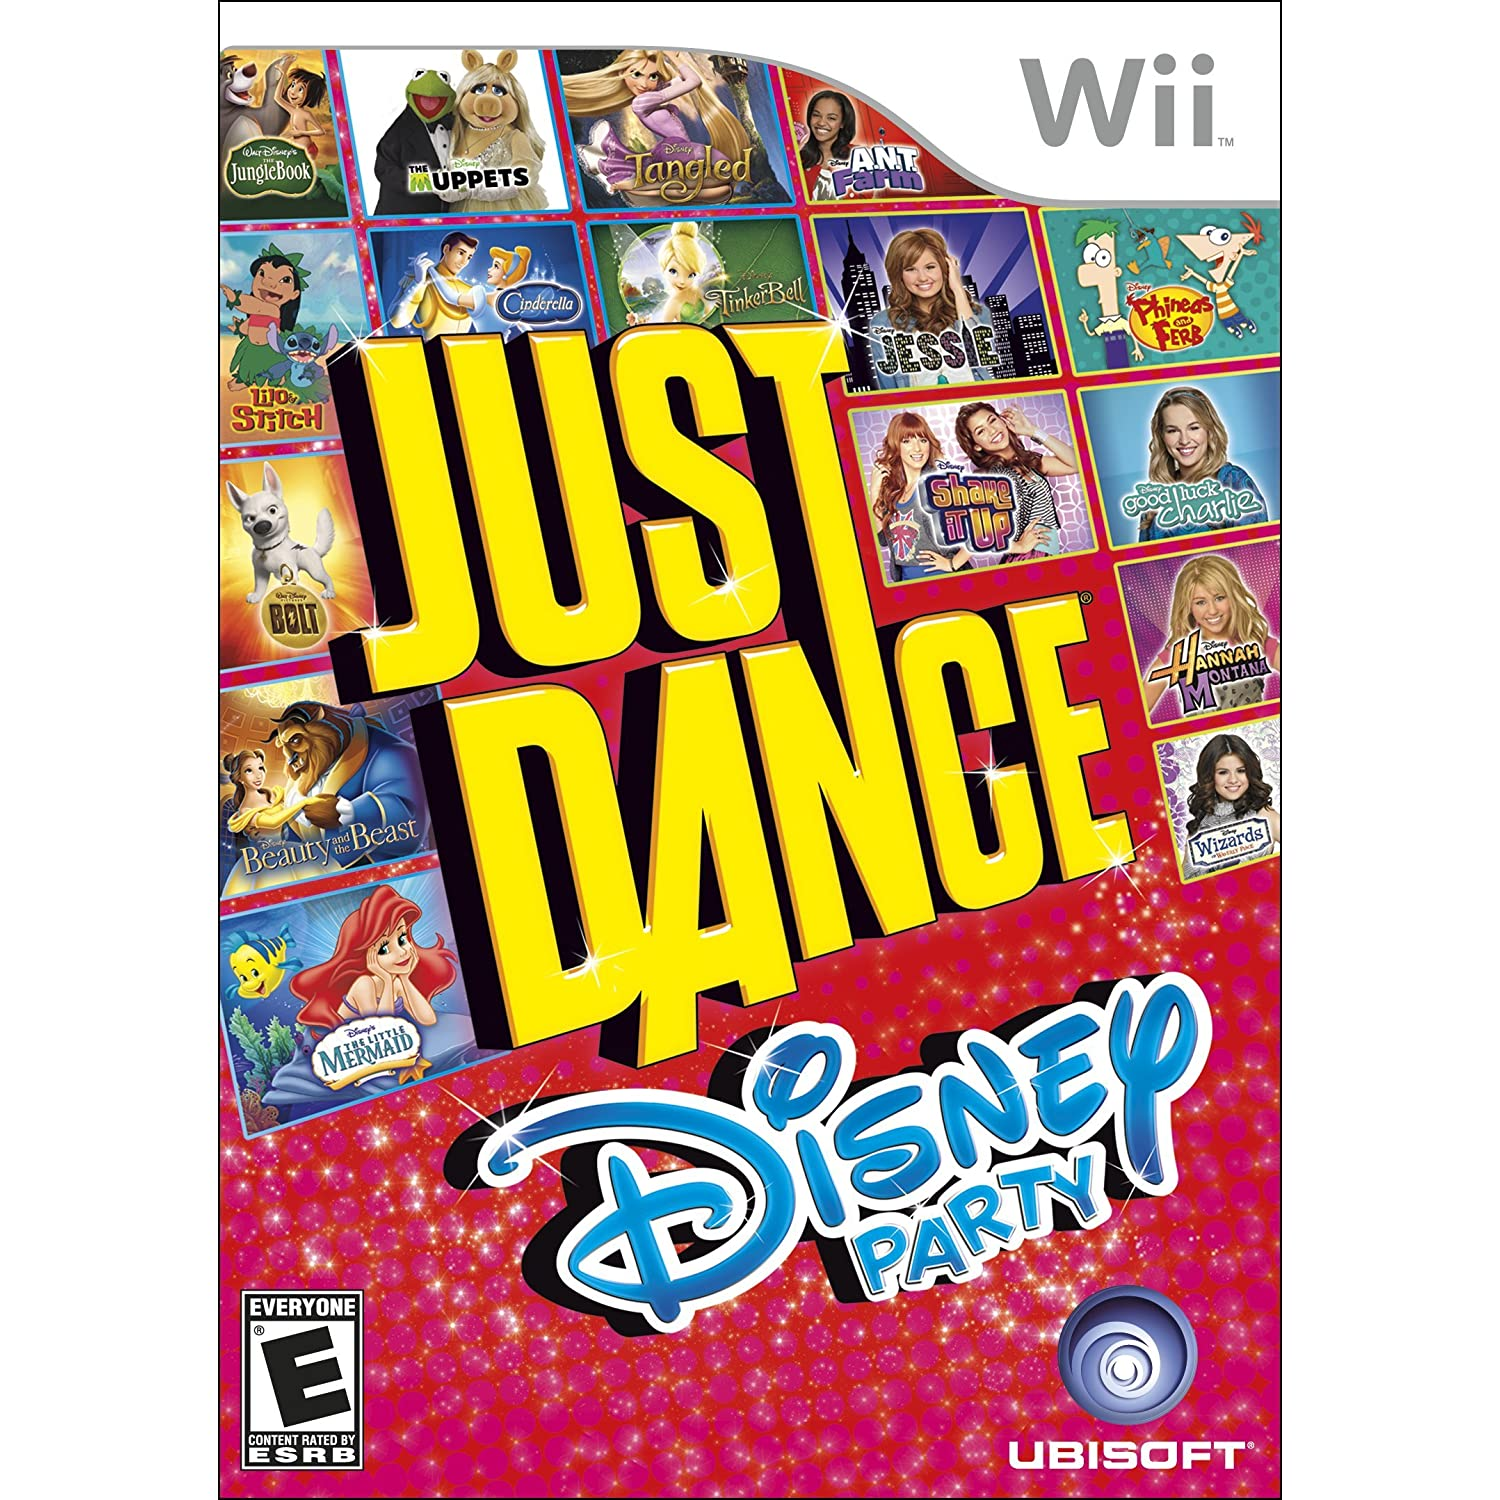 Just dance disney party kid review all for the boys for Classic dance tracks